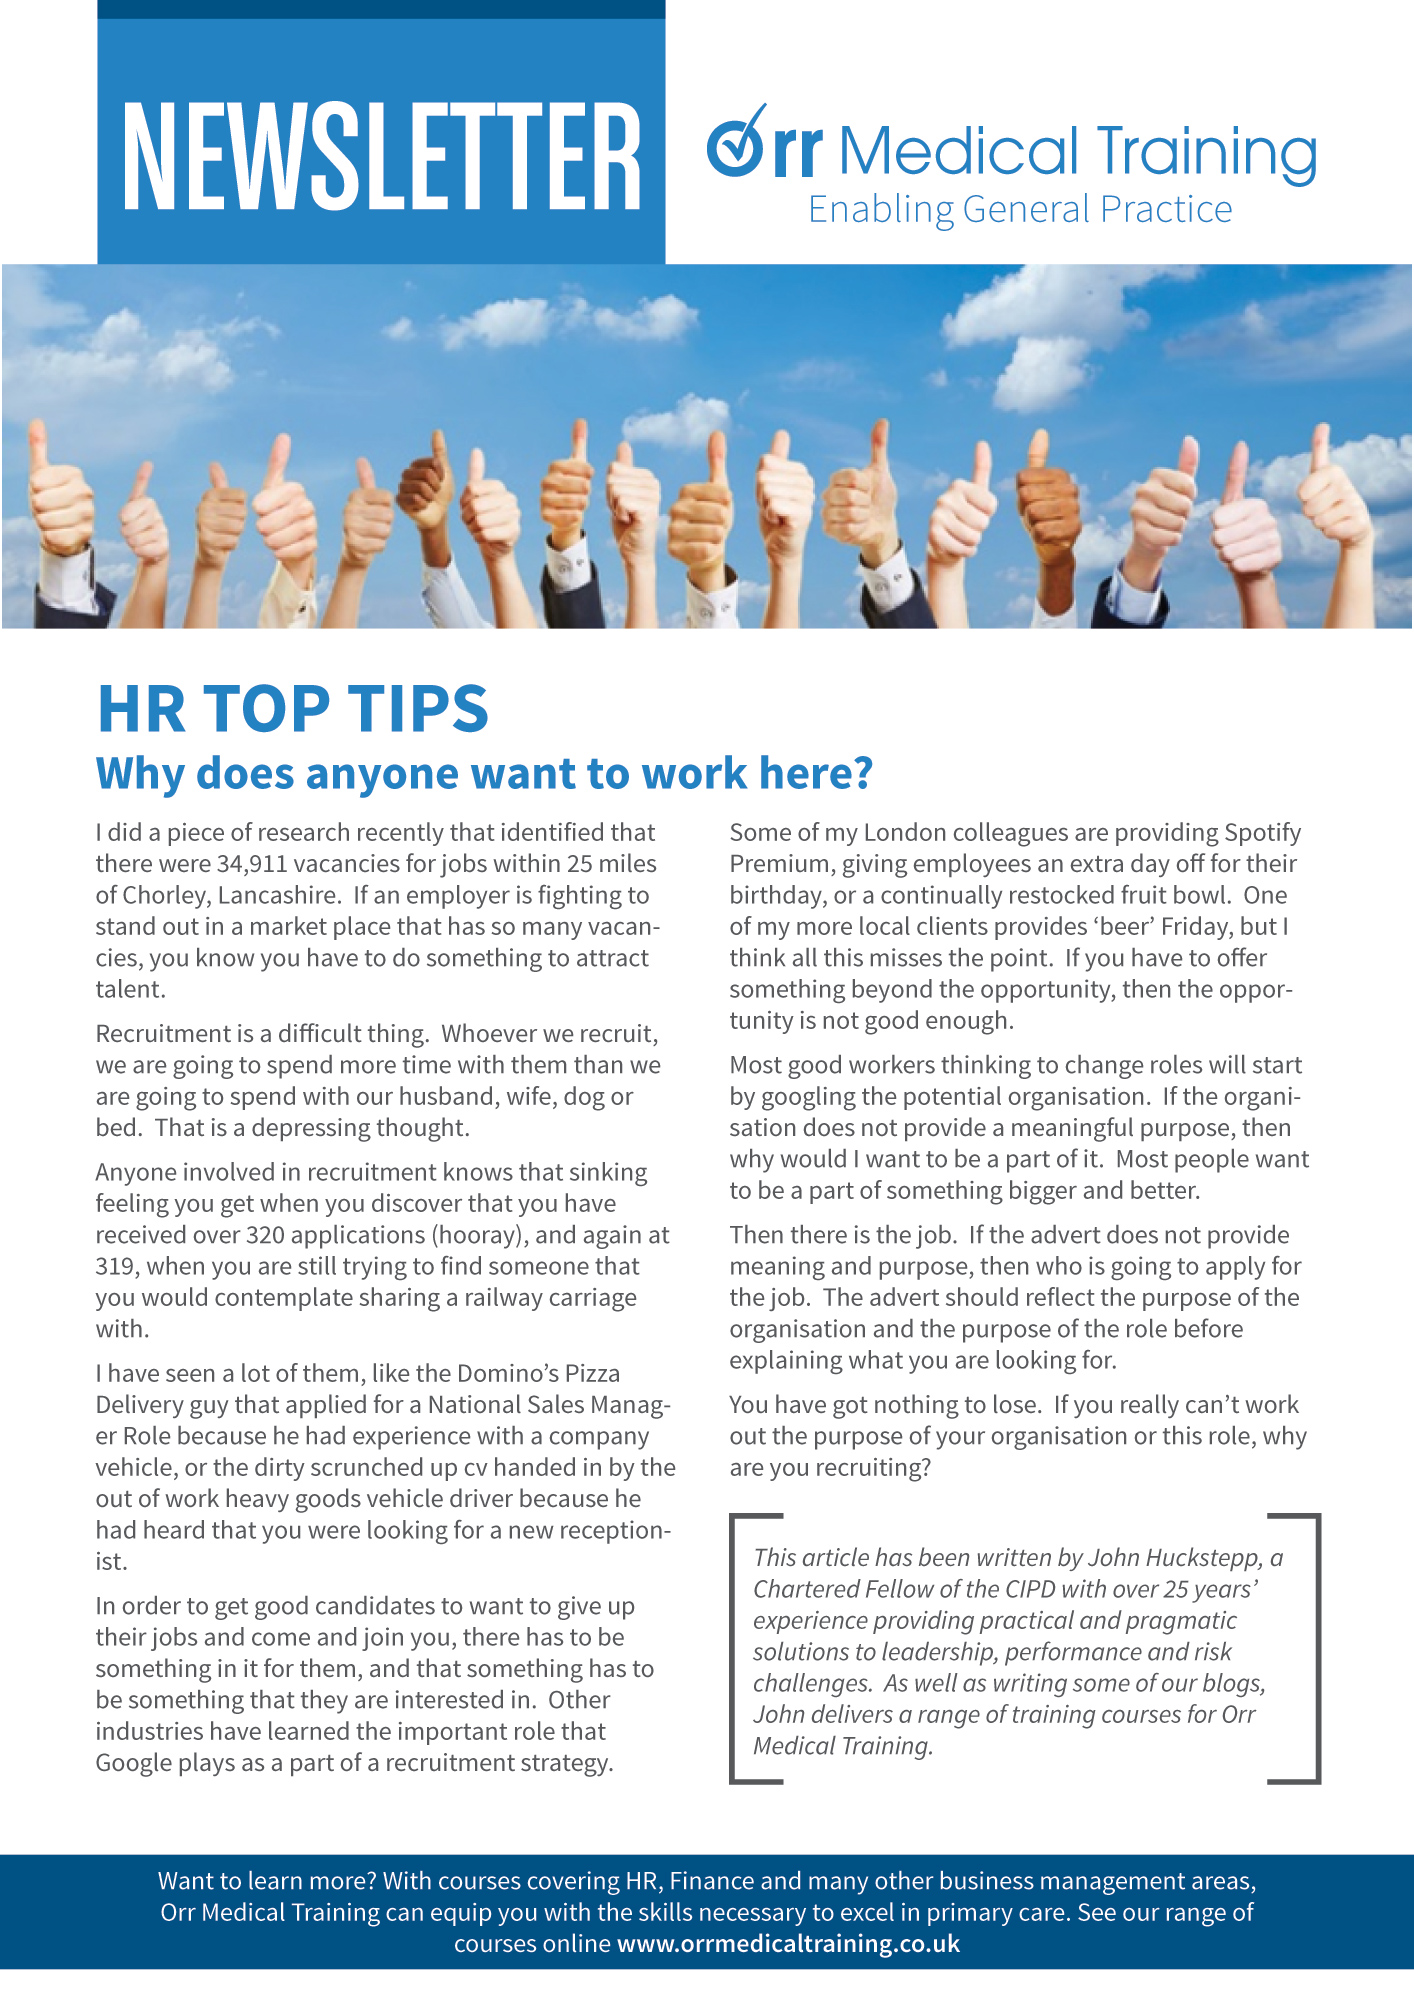 We are pleased to announce the first of our TOPTIPS newsletters. The initial series will be focused around HR Orr Medical Training